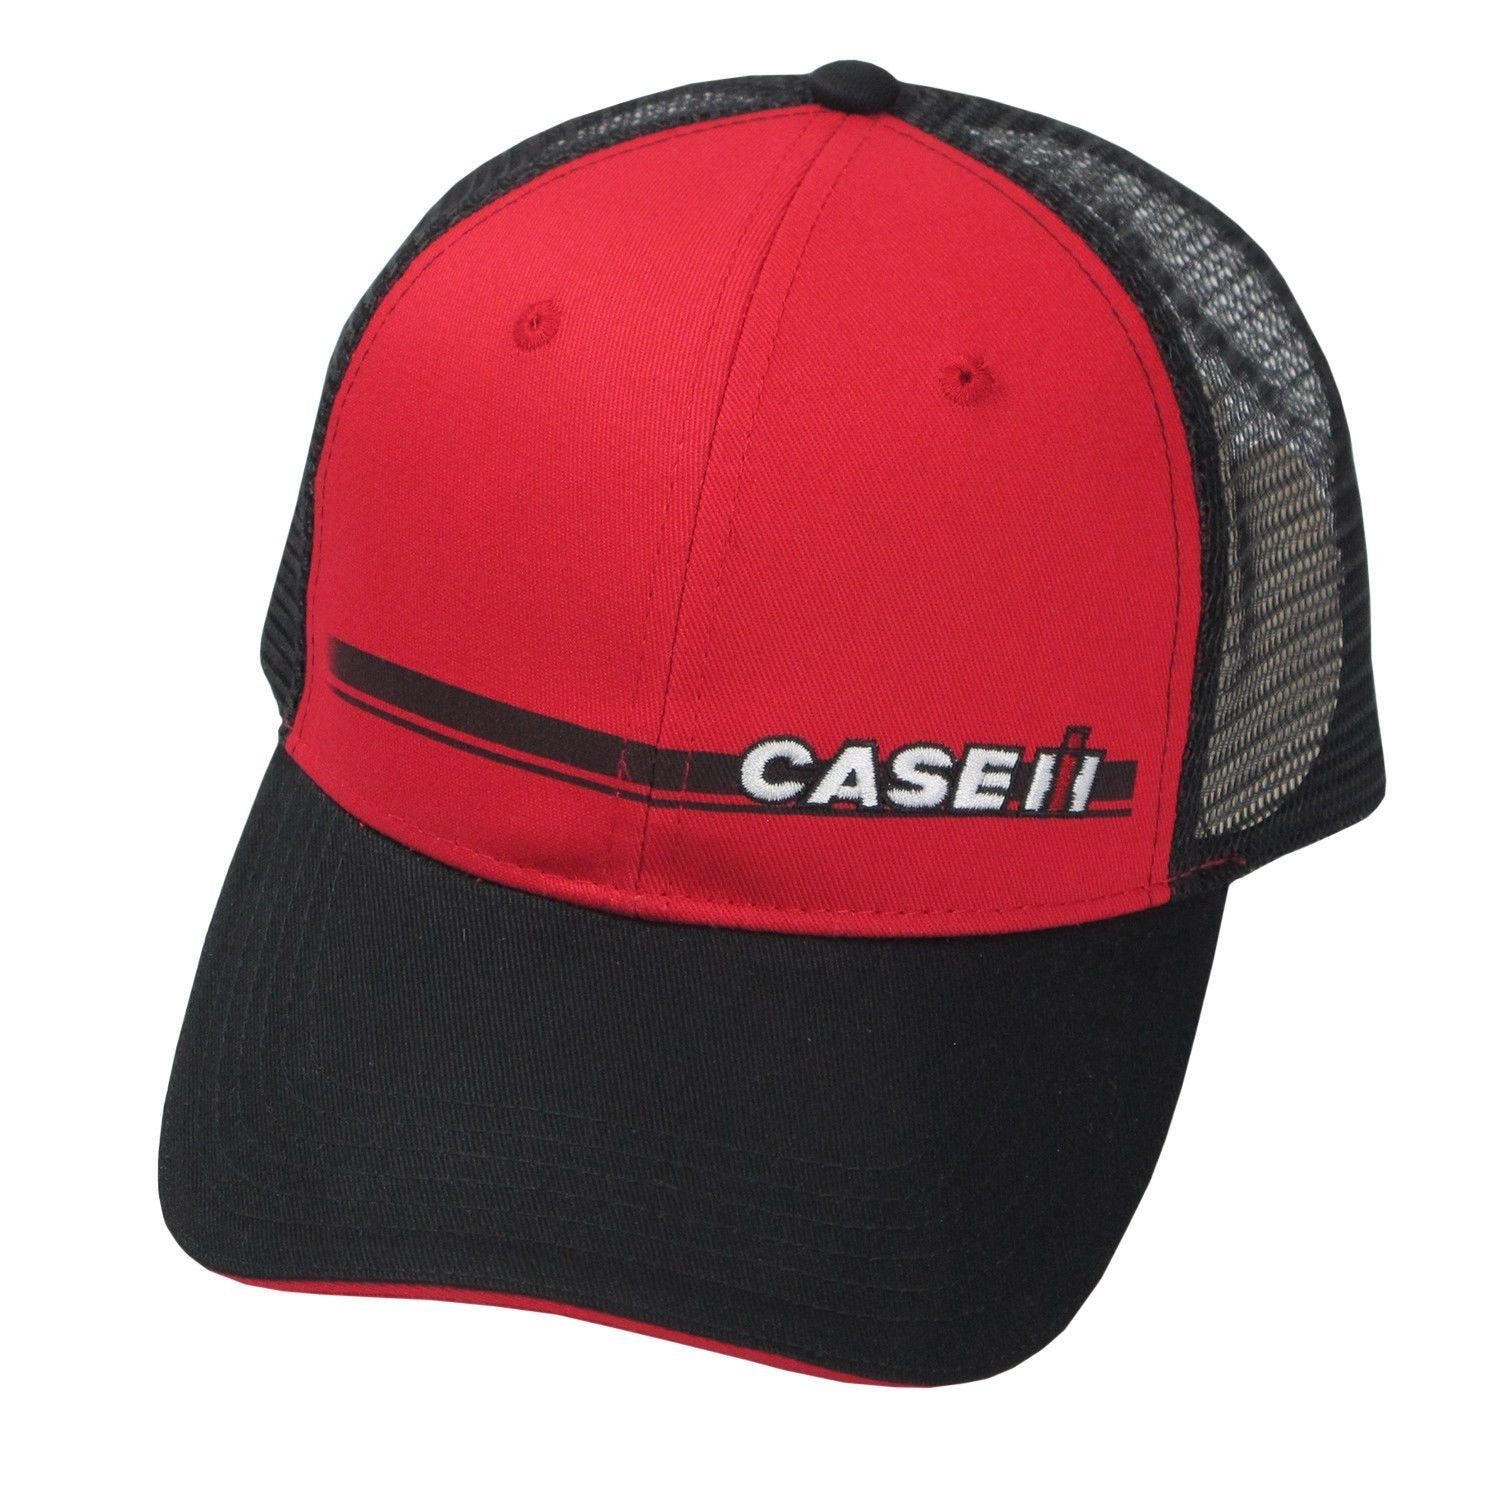 Case IH Black and Red Trucker Mesh Hat/Cap - 17CIH129